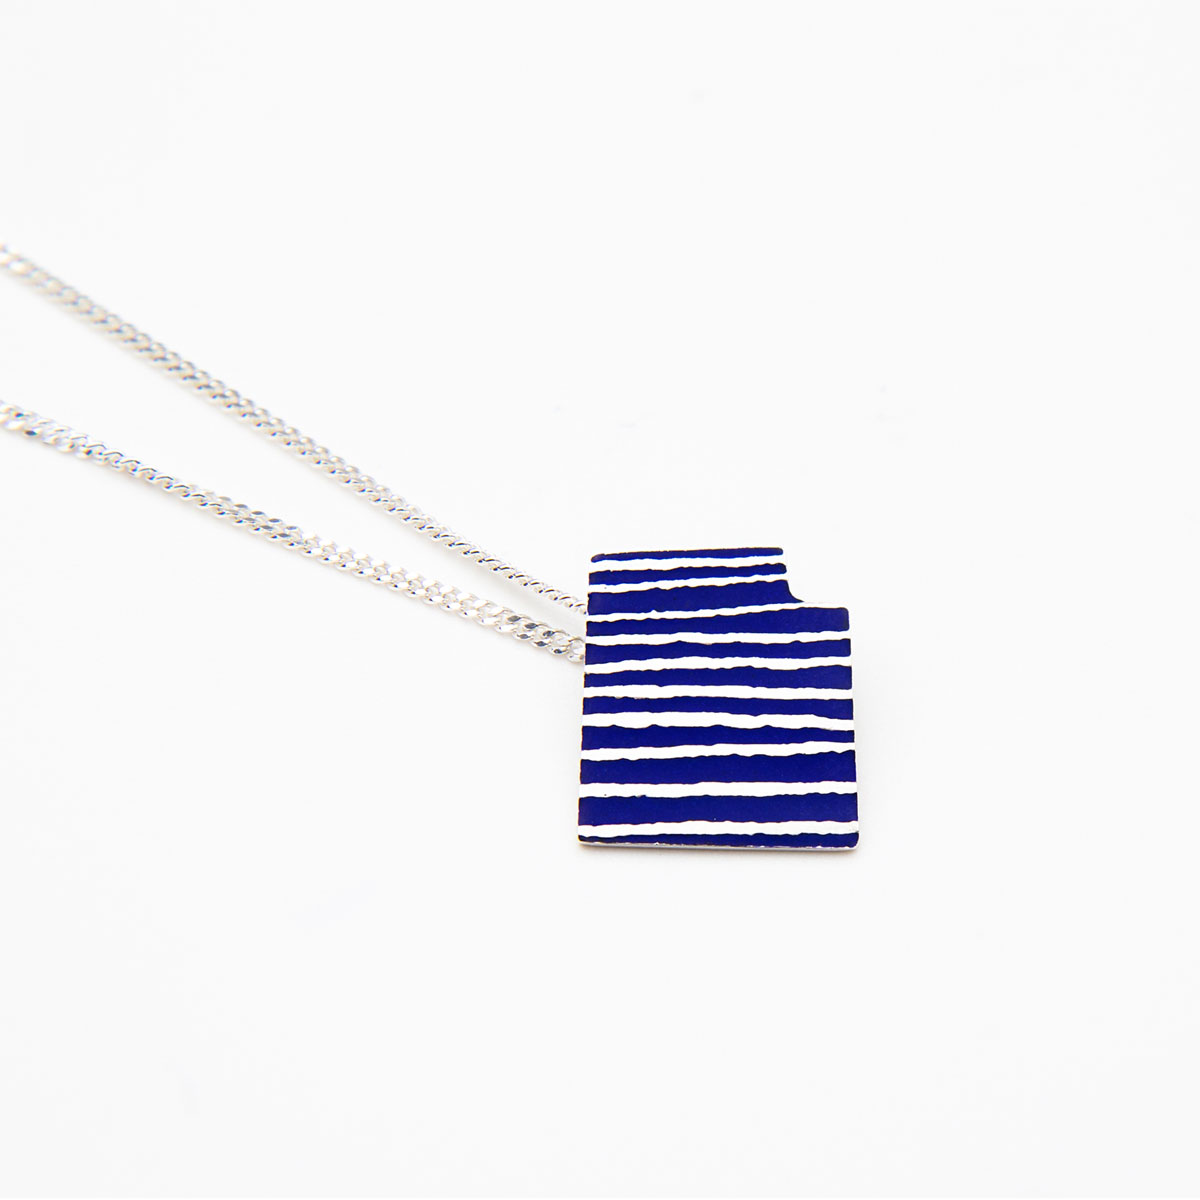 'Lines in Motion' Blue Pendant, Small